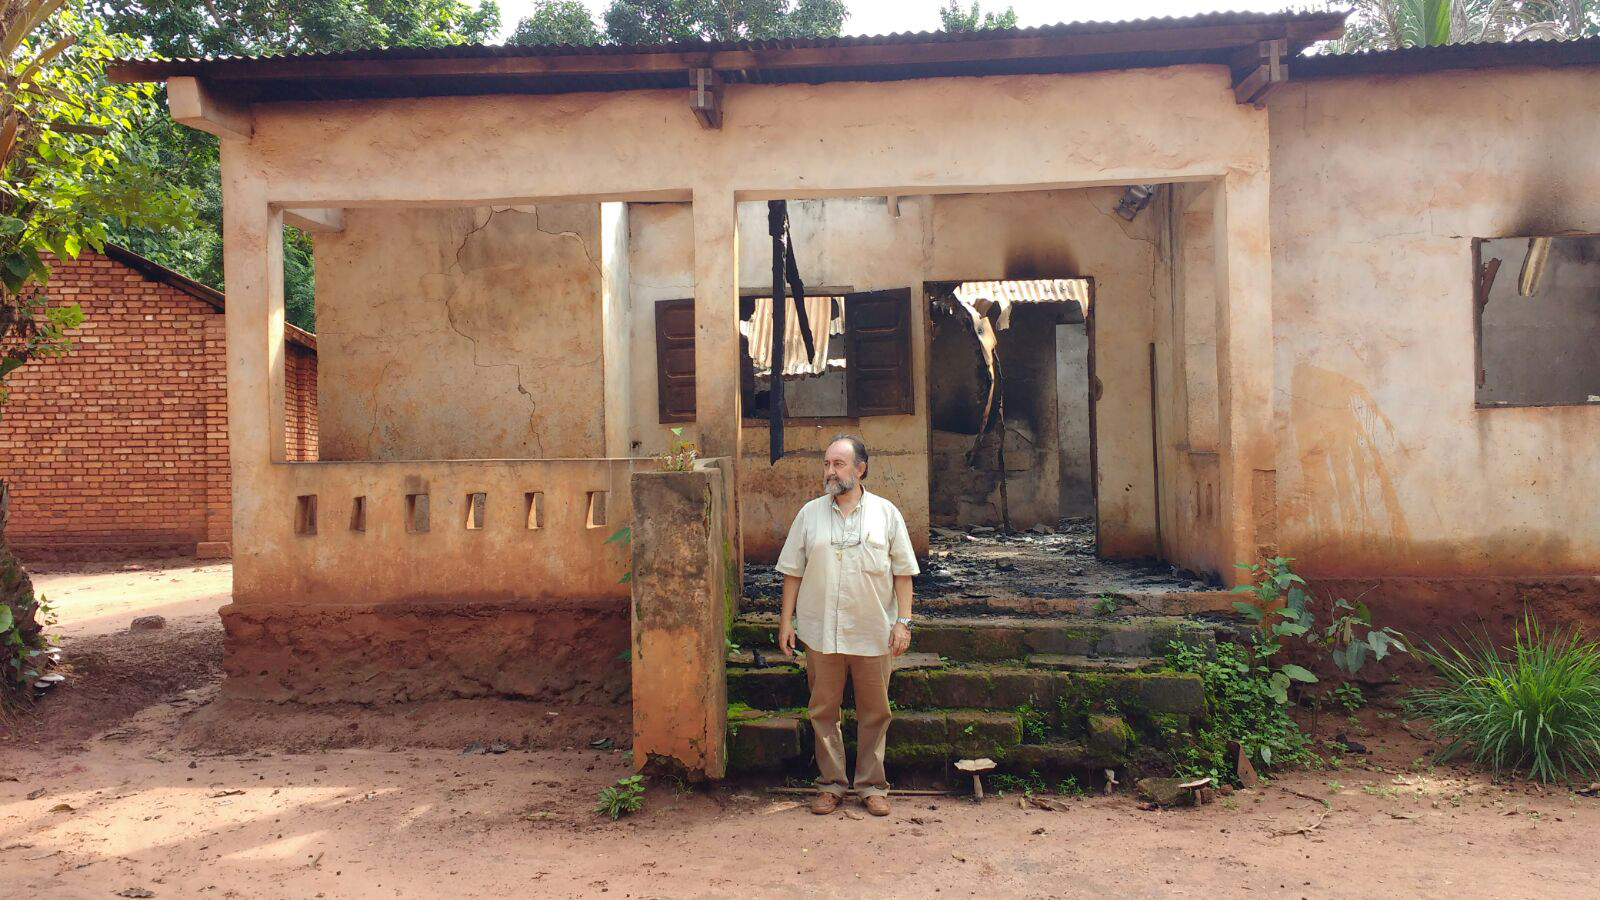 Bishop Juan Jose Aguirre outside a house attacked by Séléka jihadists in Central African Republic